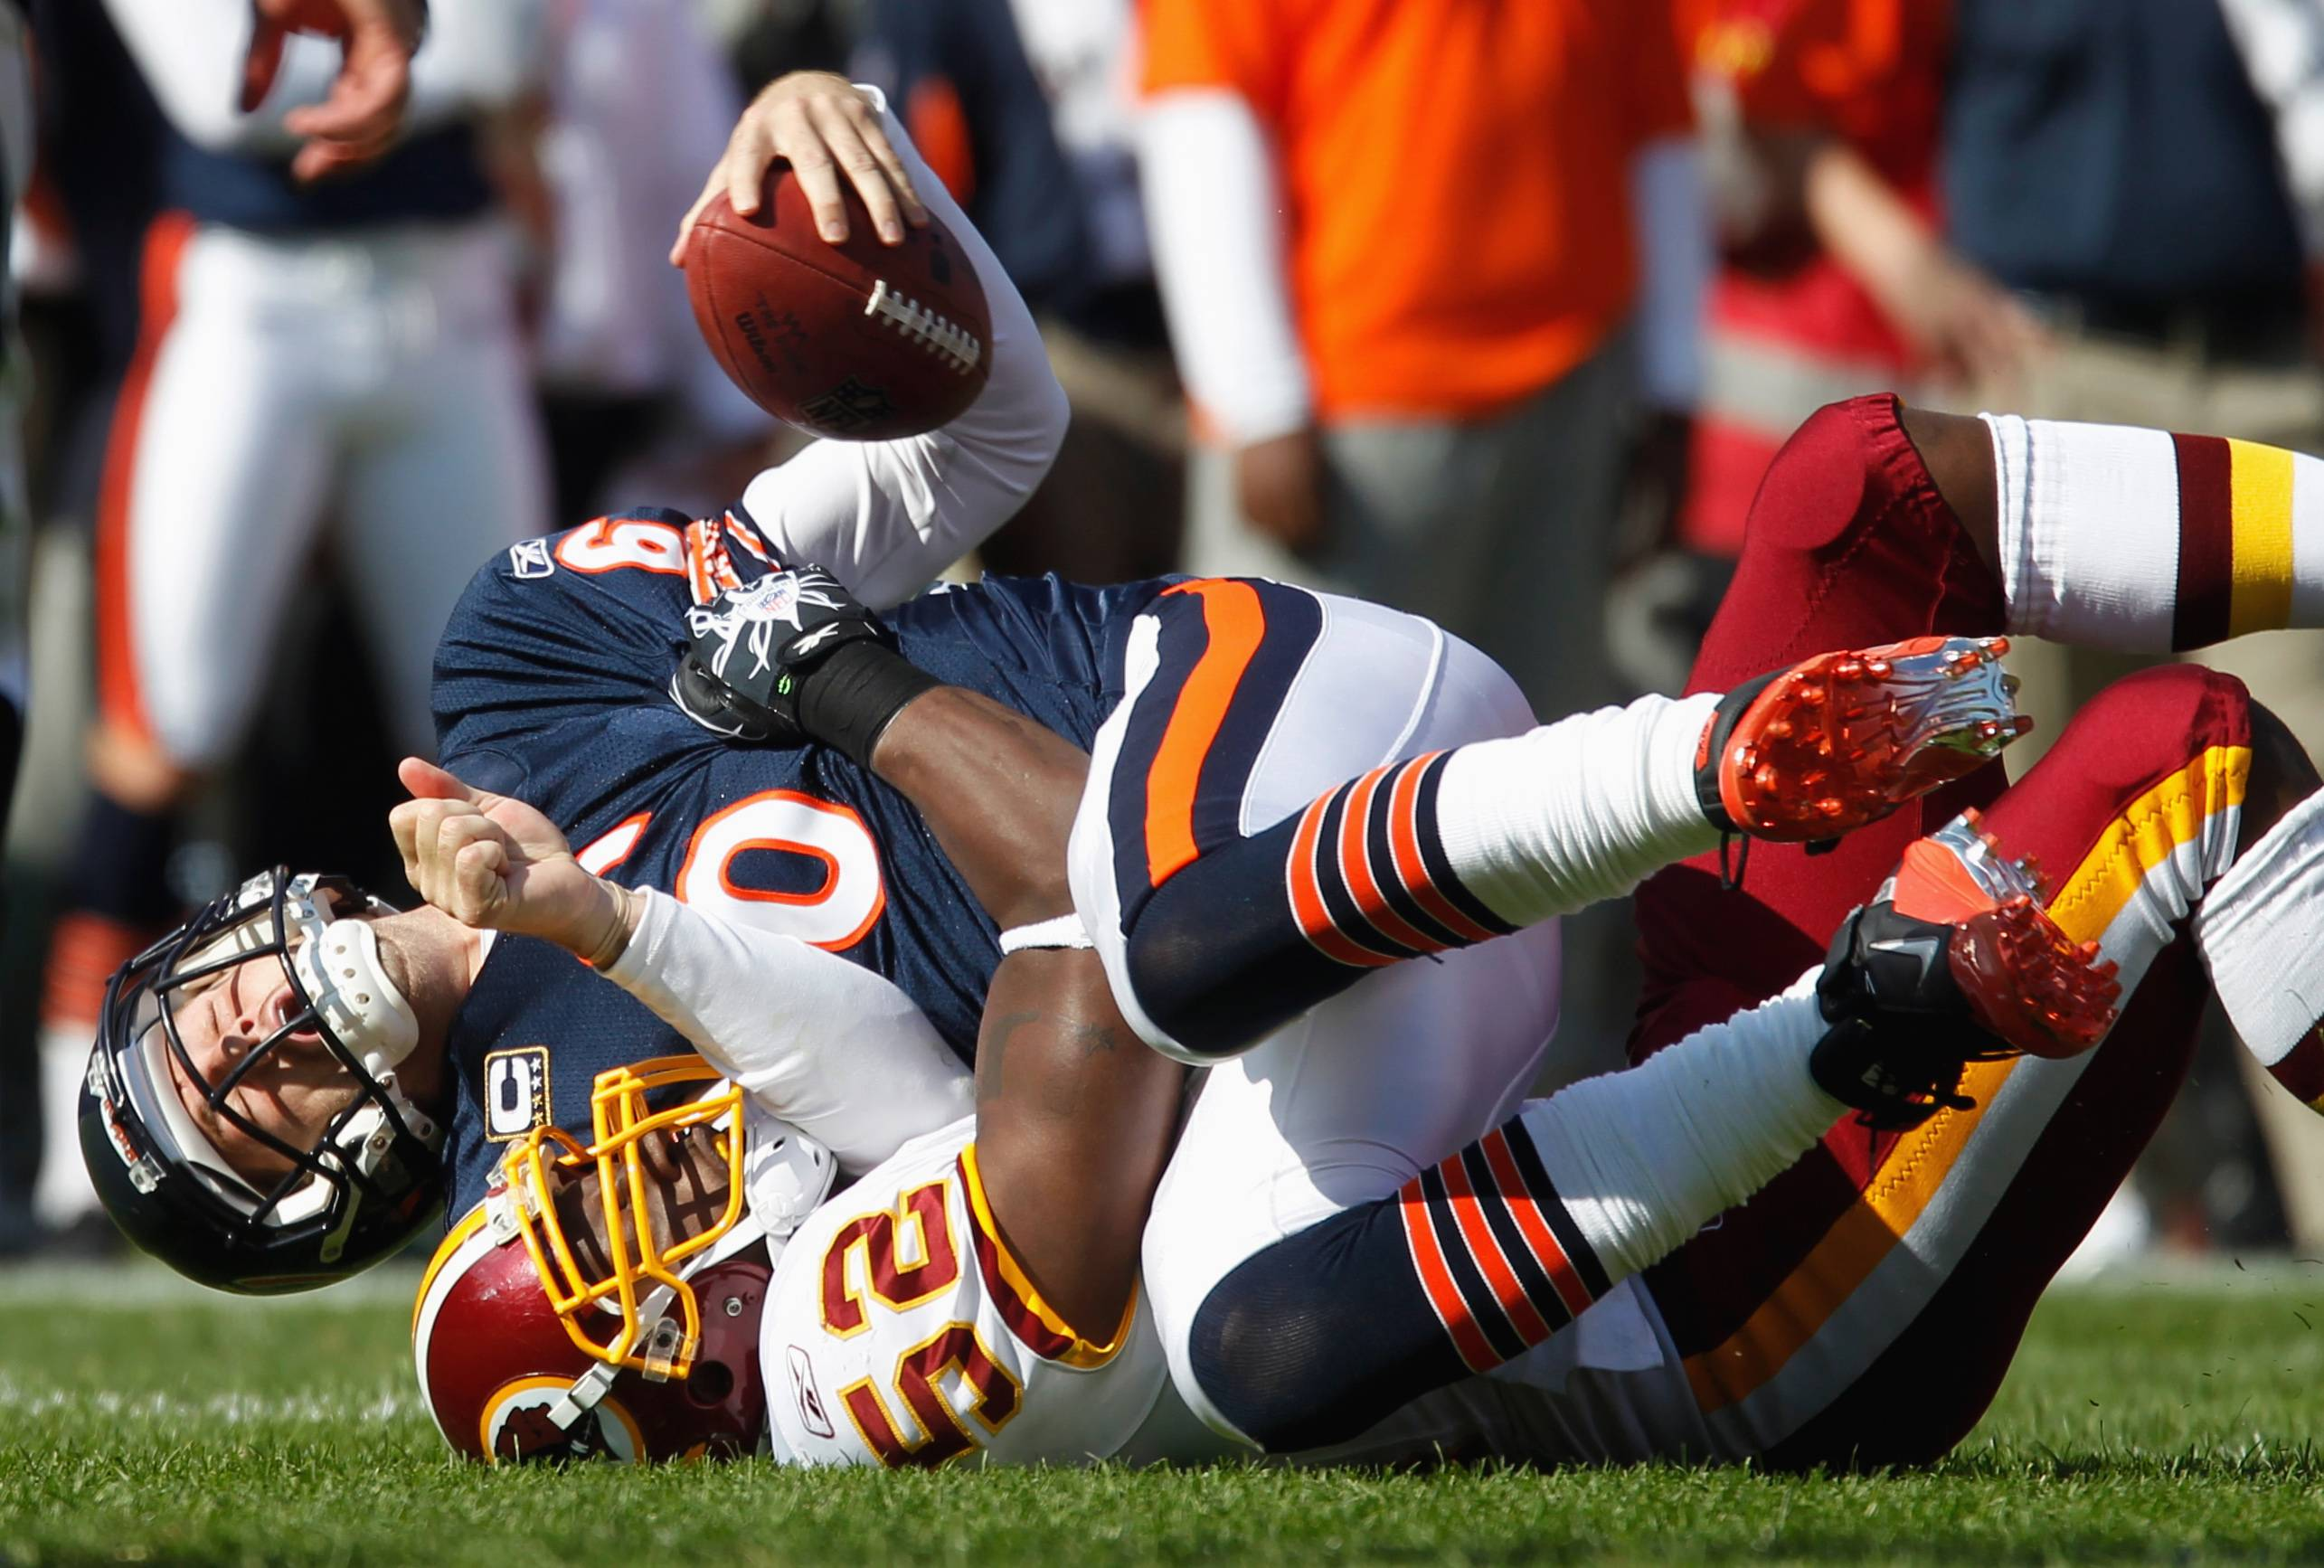 Cutler plays catch with Redskins' Hall